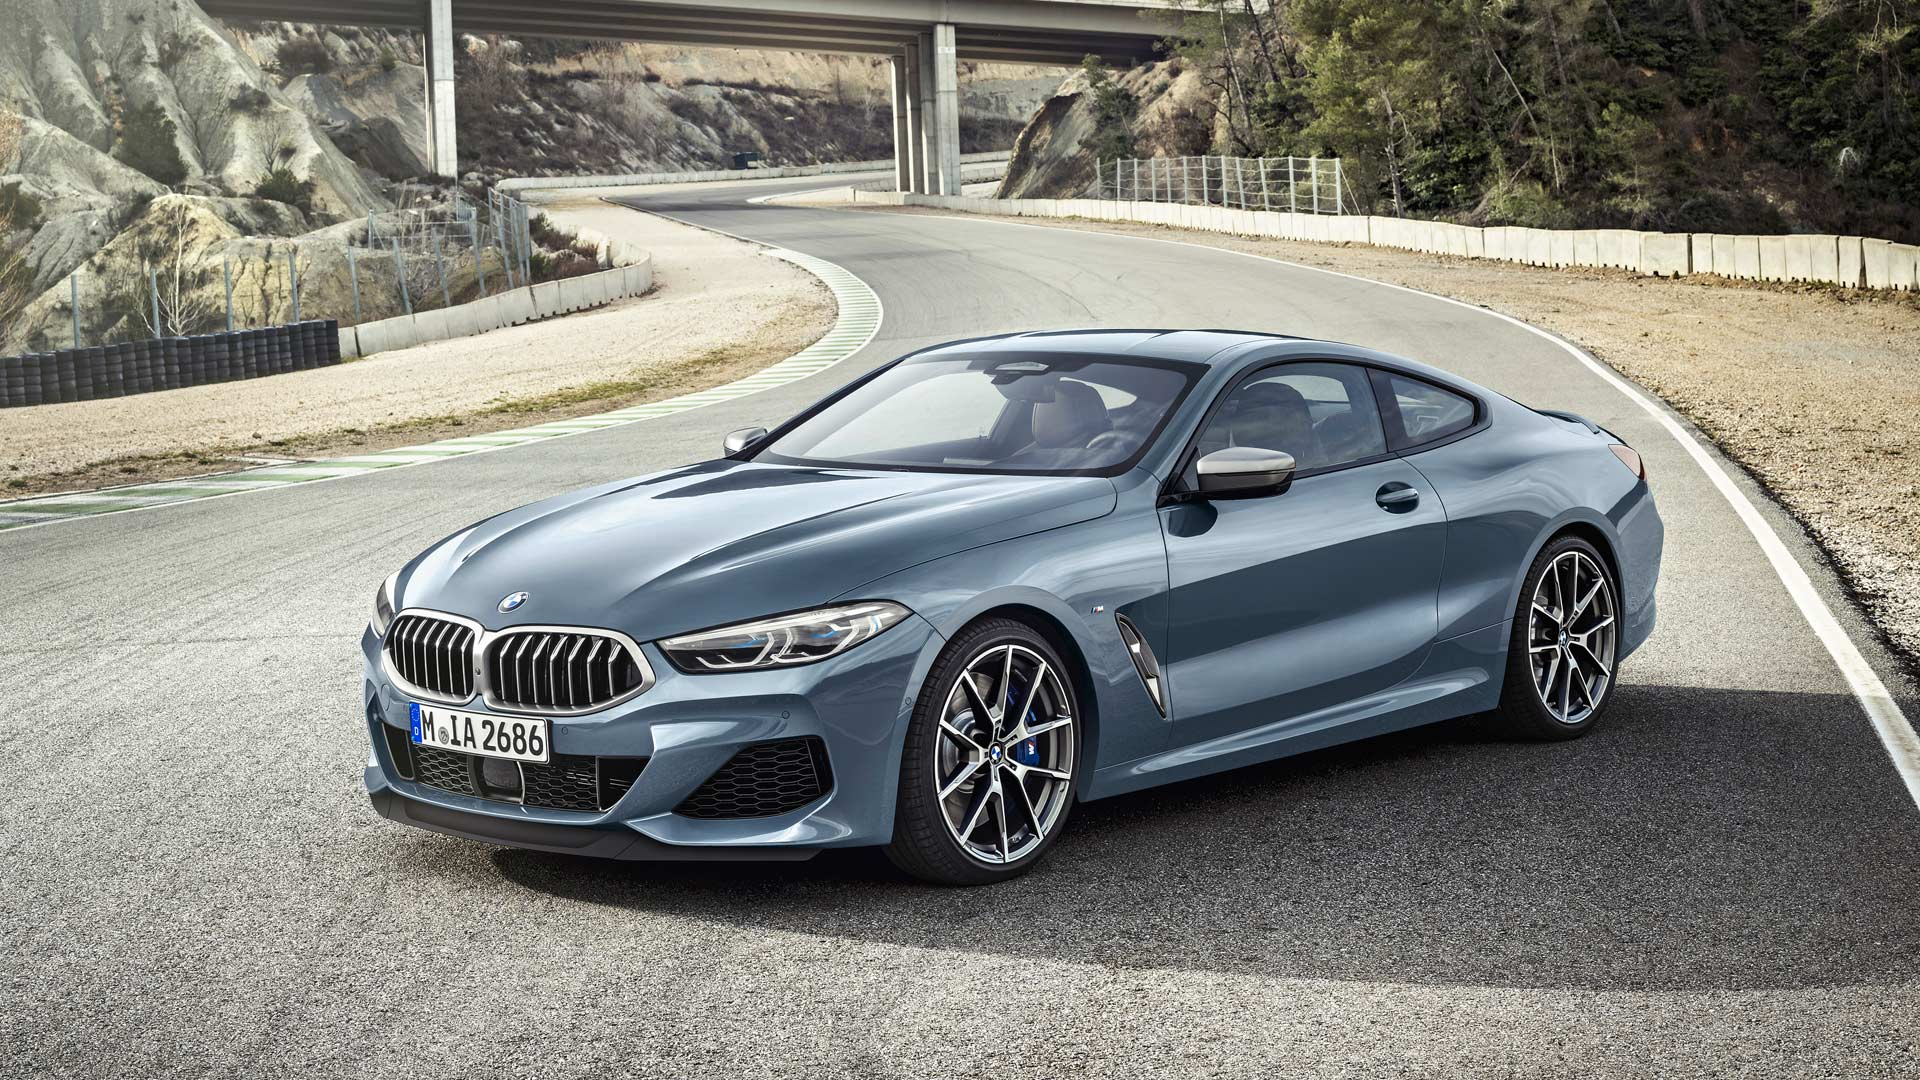 2019 BMW 8 Series Coupe Debuts With 530 Hp V8